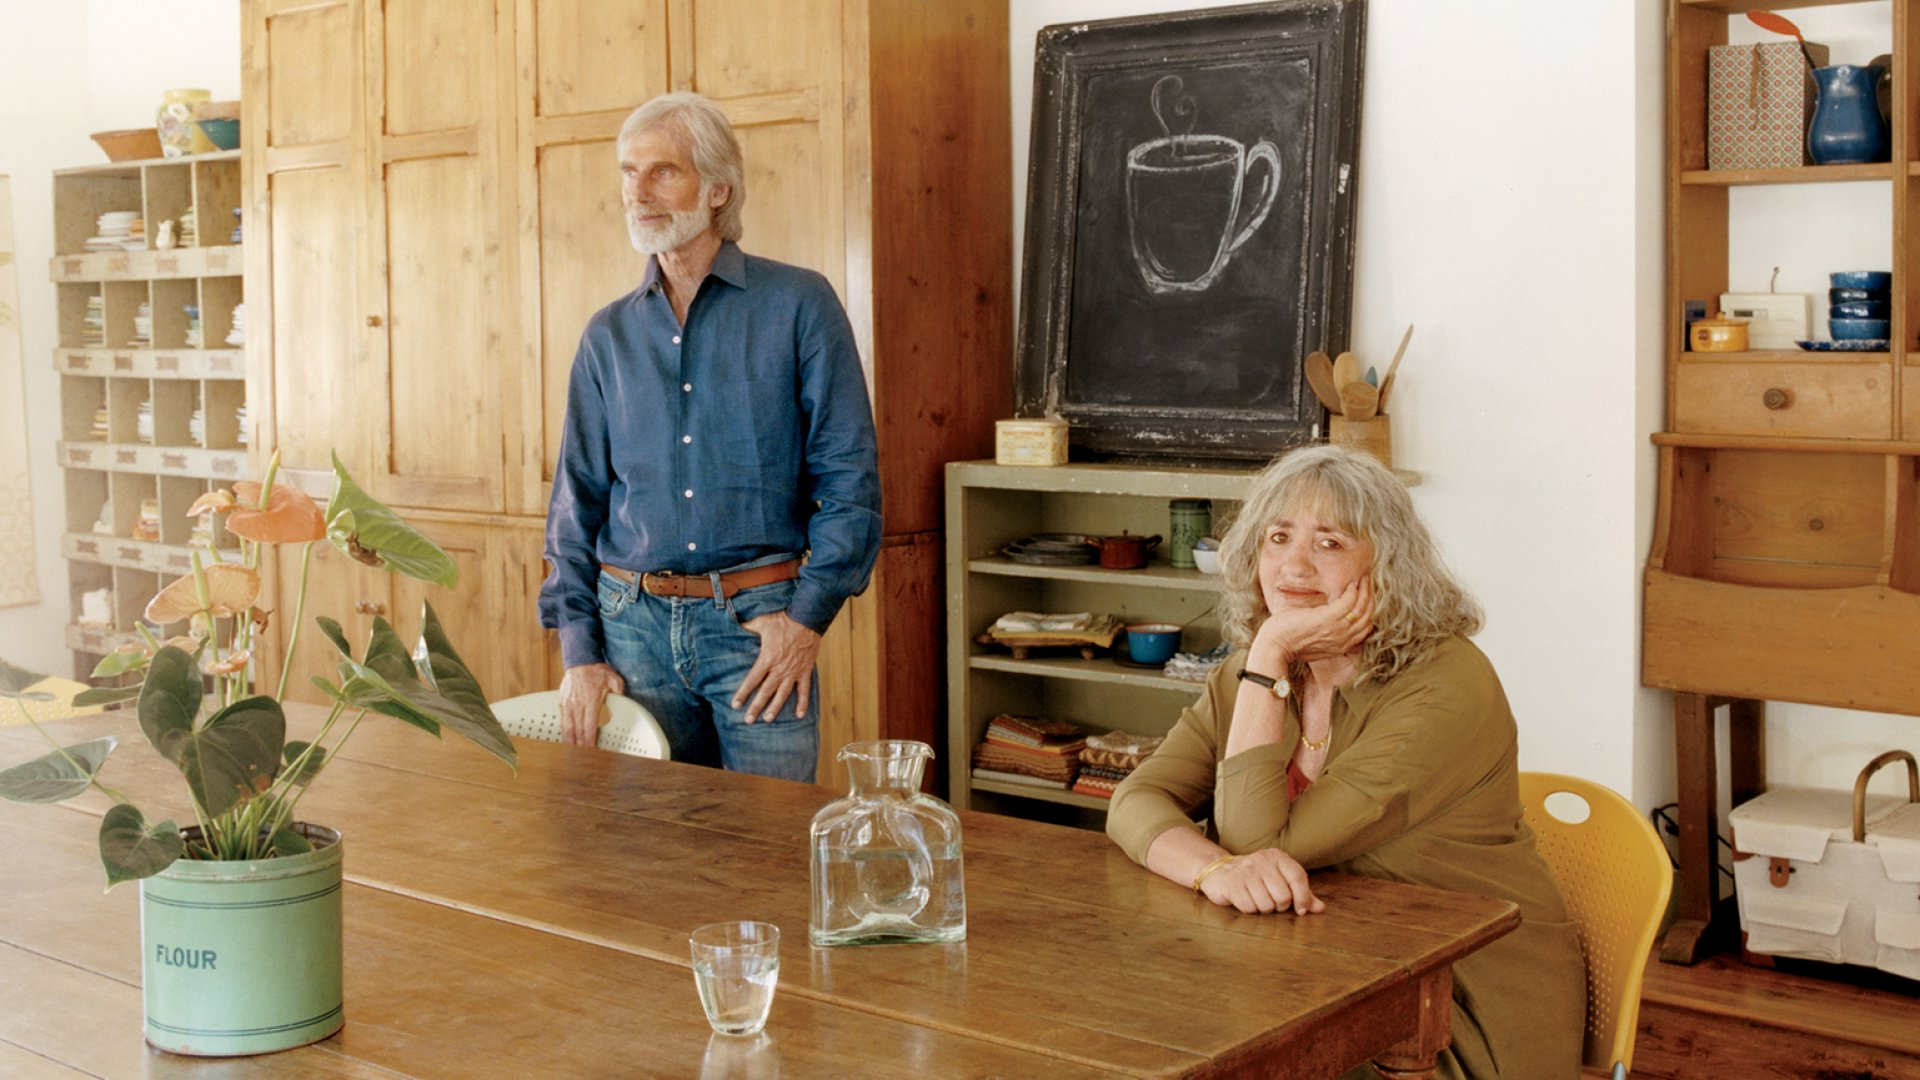 Rachel and Andy Berliner didn't set out to establish the market for organic frozen foods. But when they couldn't find anything good to eat, they realized they could create it.